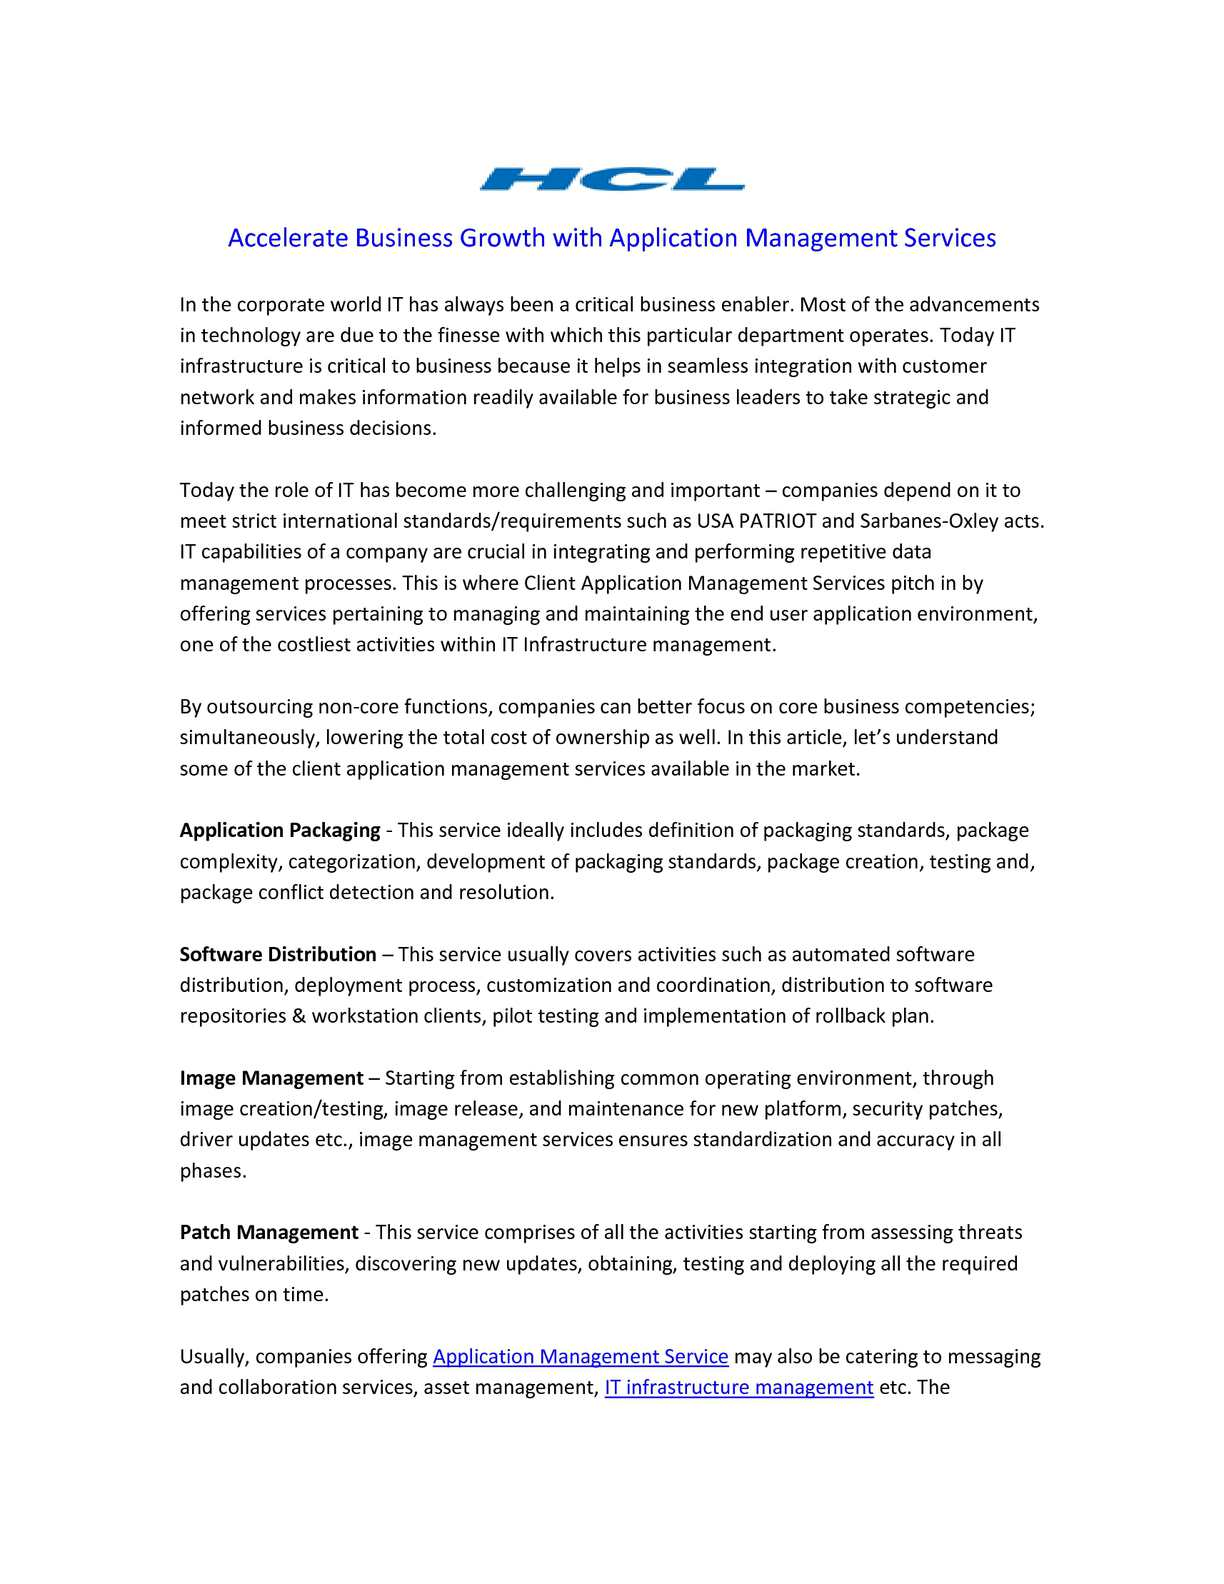 Calaméo   Accelerate Business Growth With Application Management Services